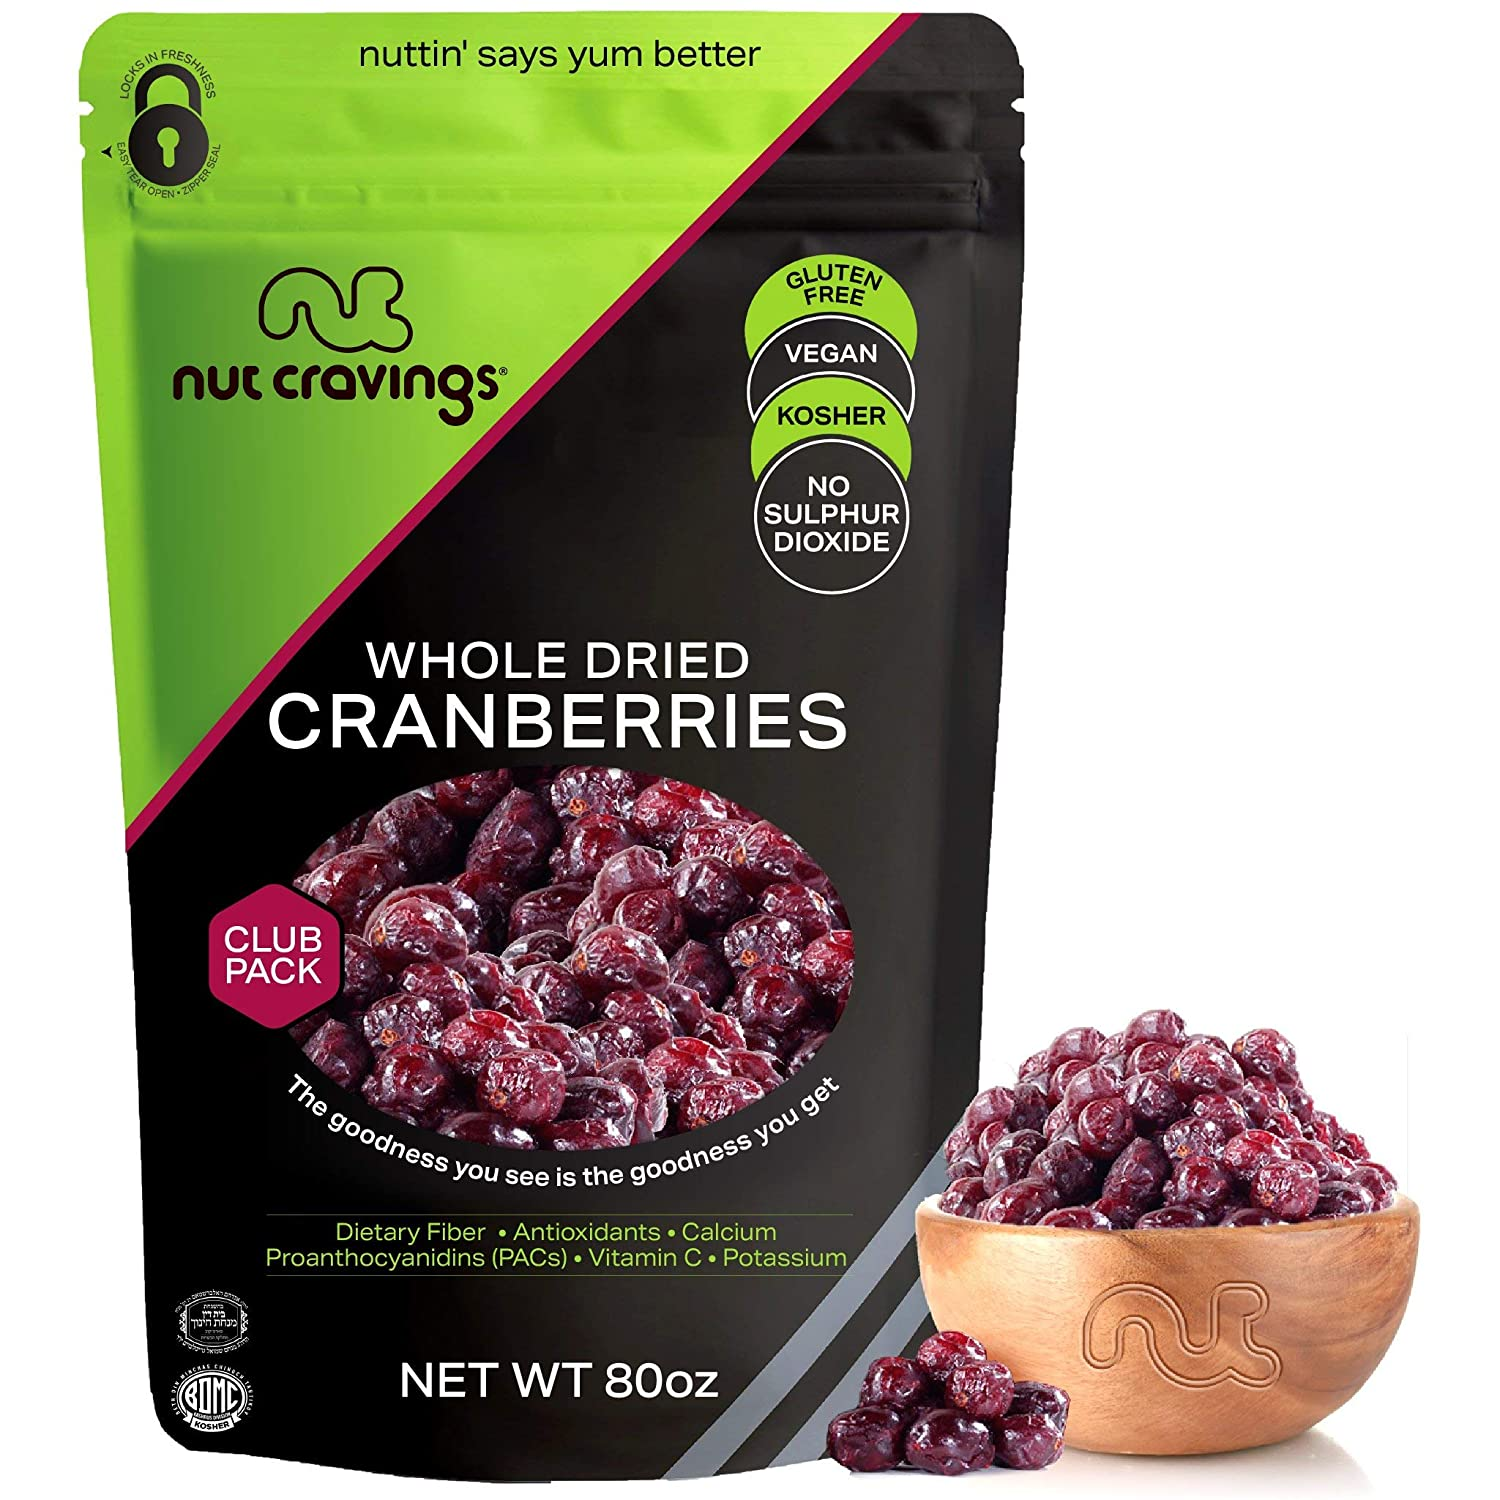 Sun Dried Whole Cranberries, Lightly Sweetened (80oz - 5 Pound) Packed Fresh in Resealable Bag - Sweet Dehydrated Fruit Treat, Trail Mix Snack - Healthy Food, All Natural, Vegan, Kosher Certified